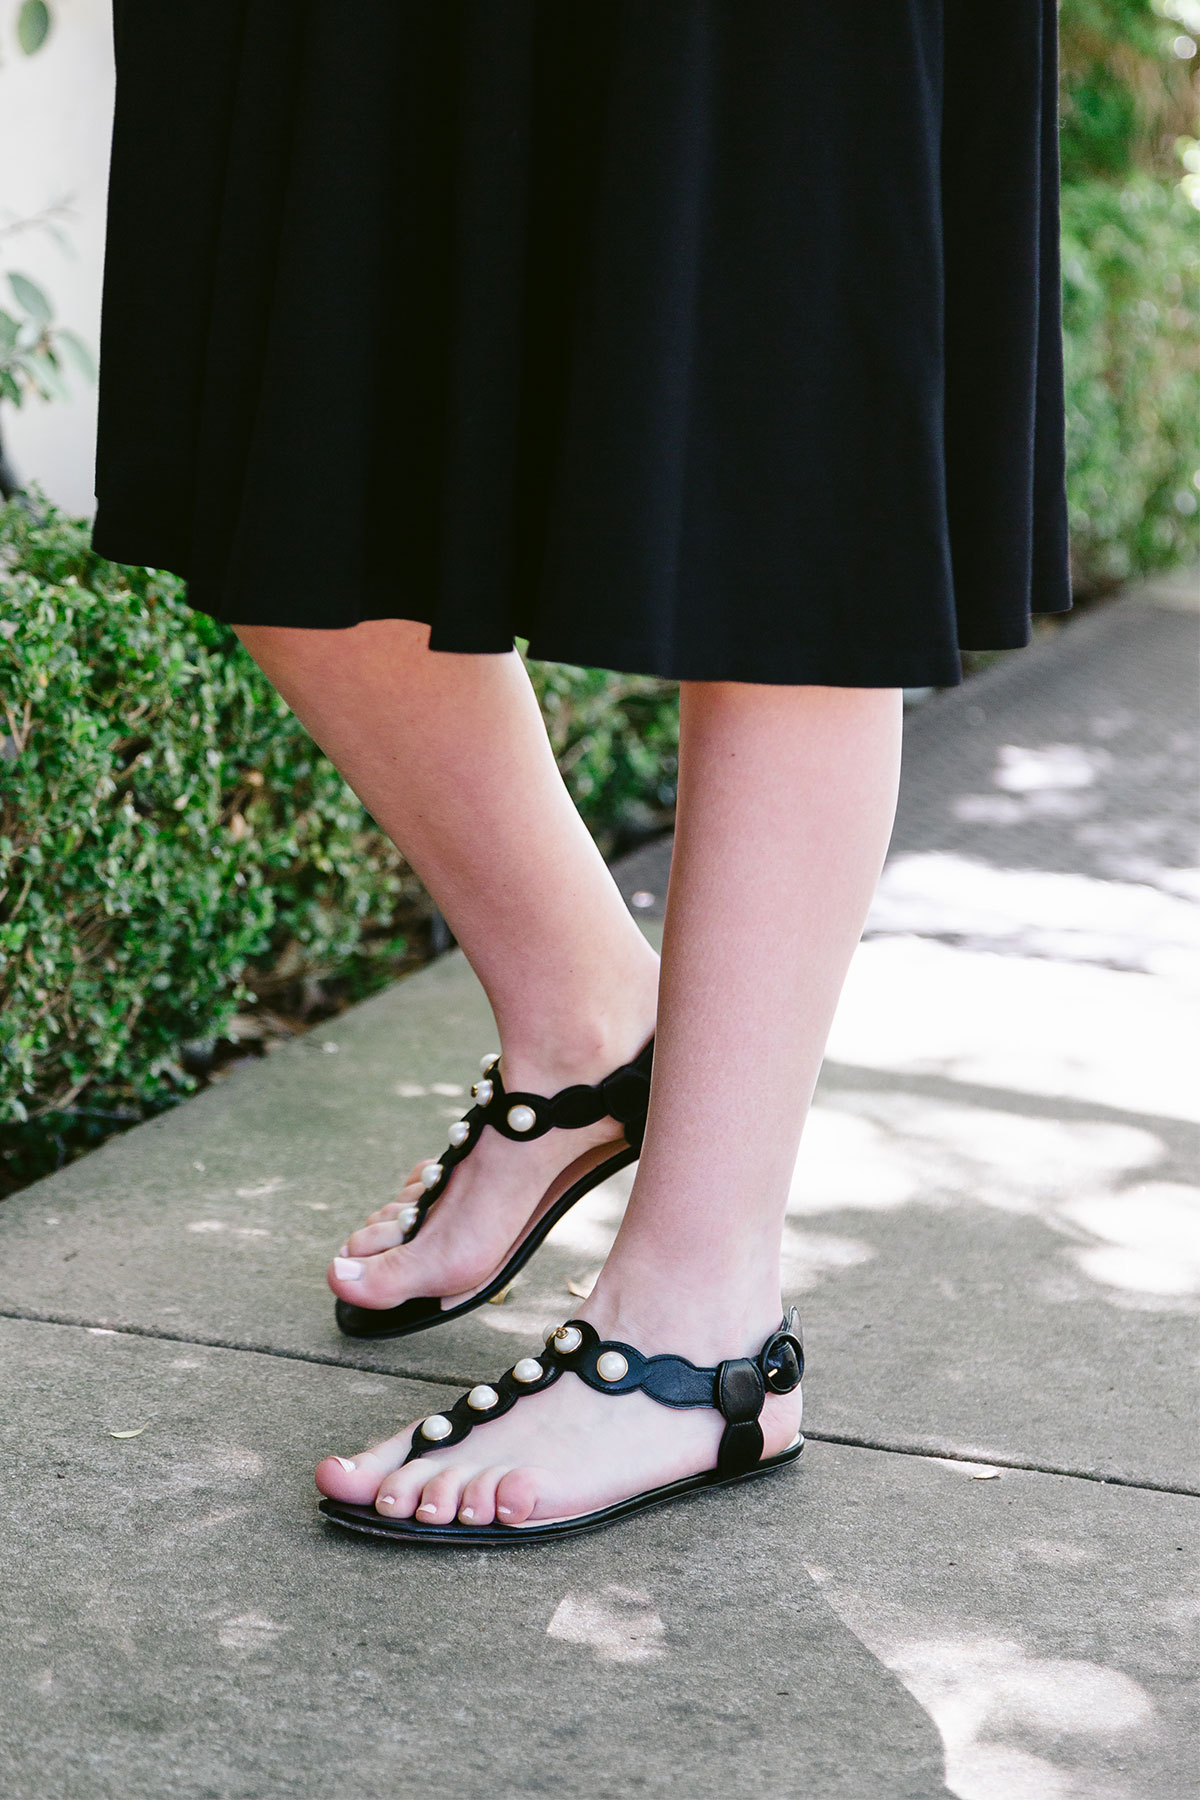 Gucci Pearl Sandals | The Style Scribe